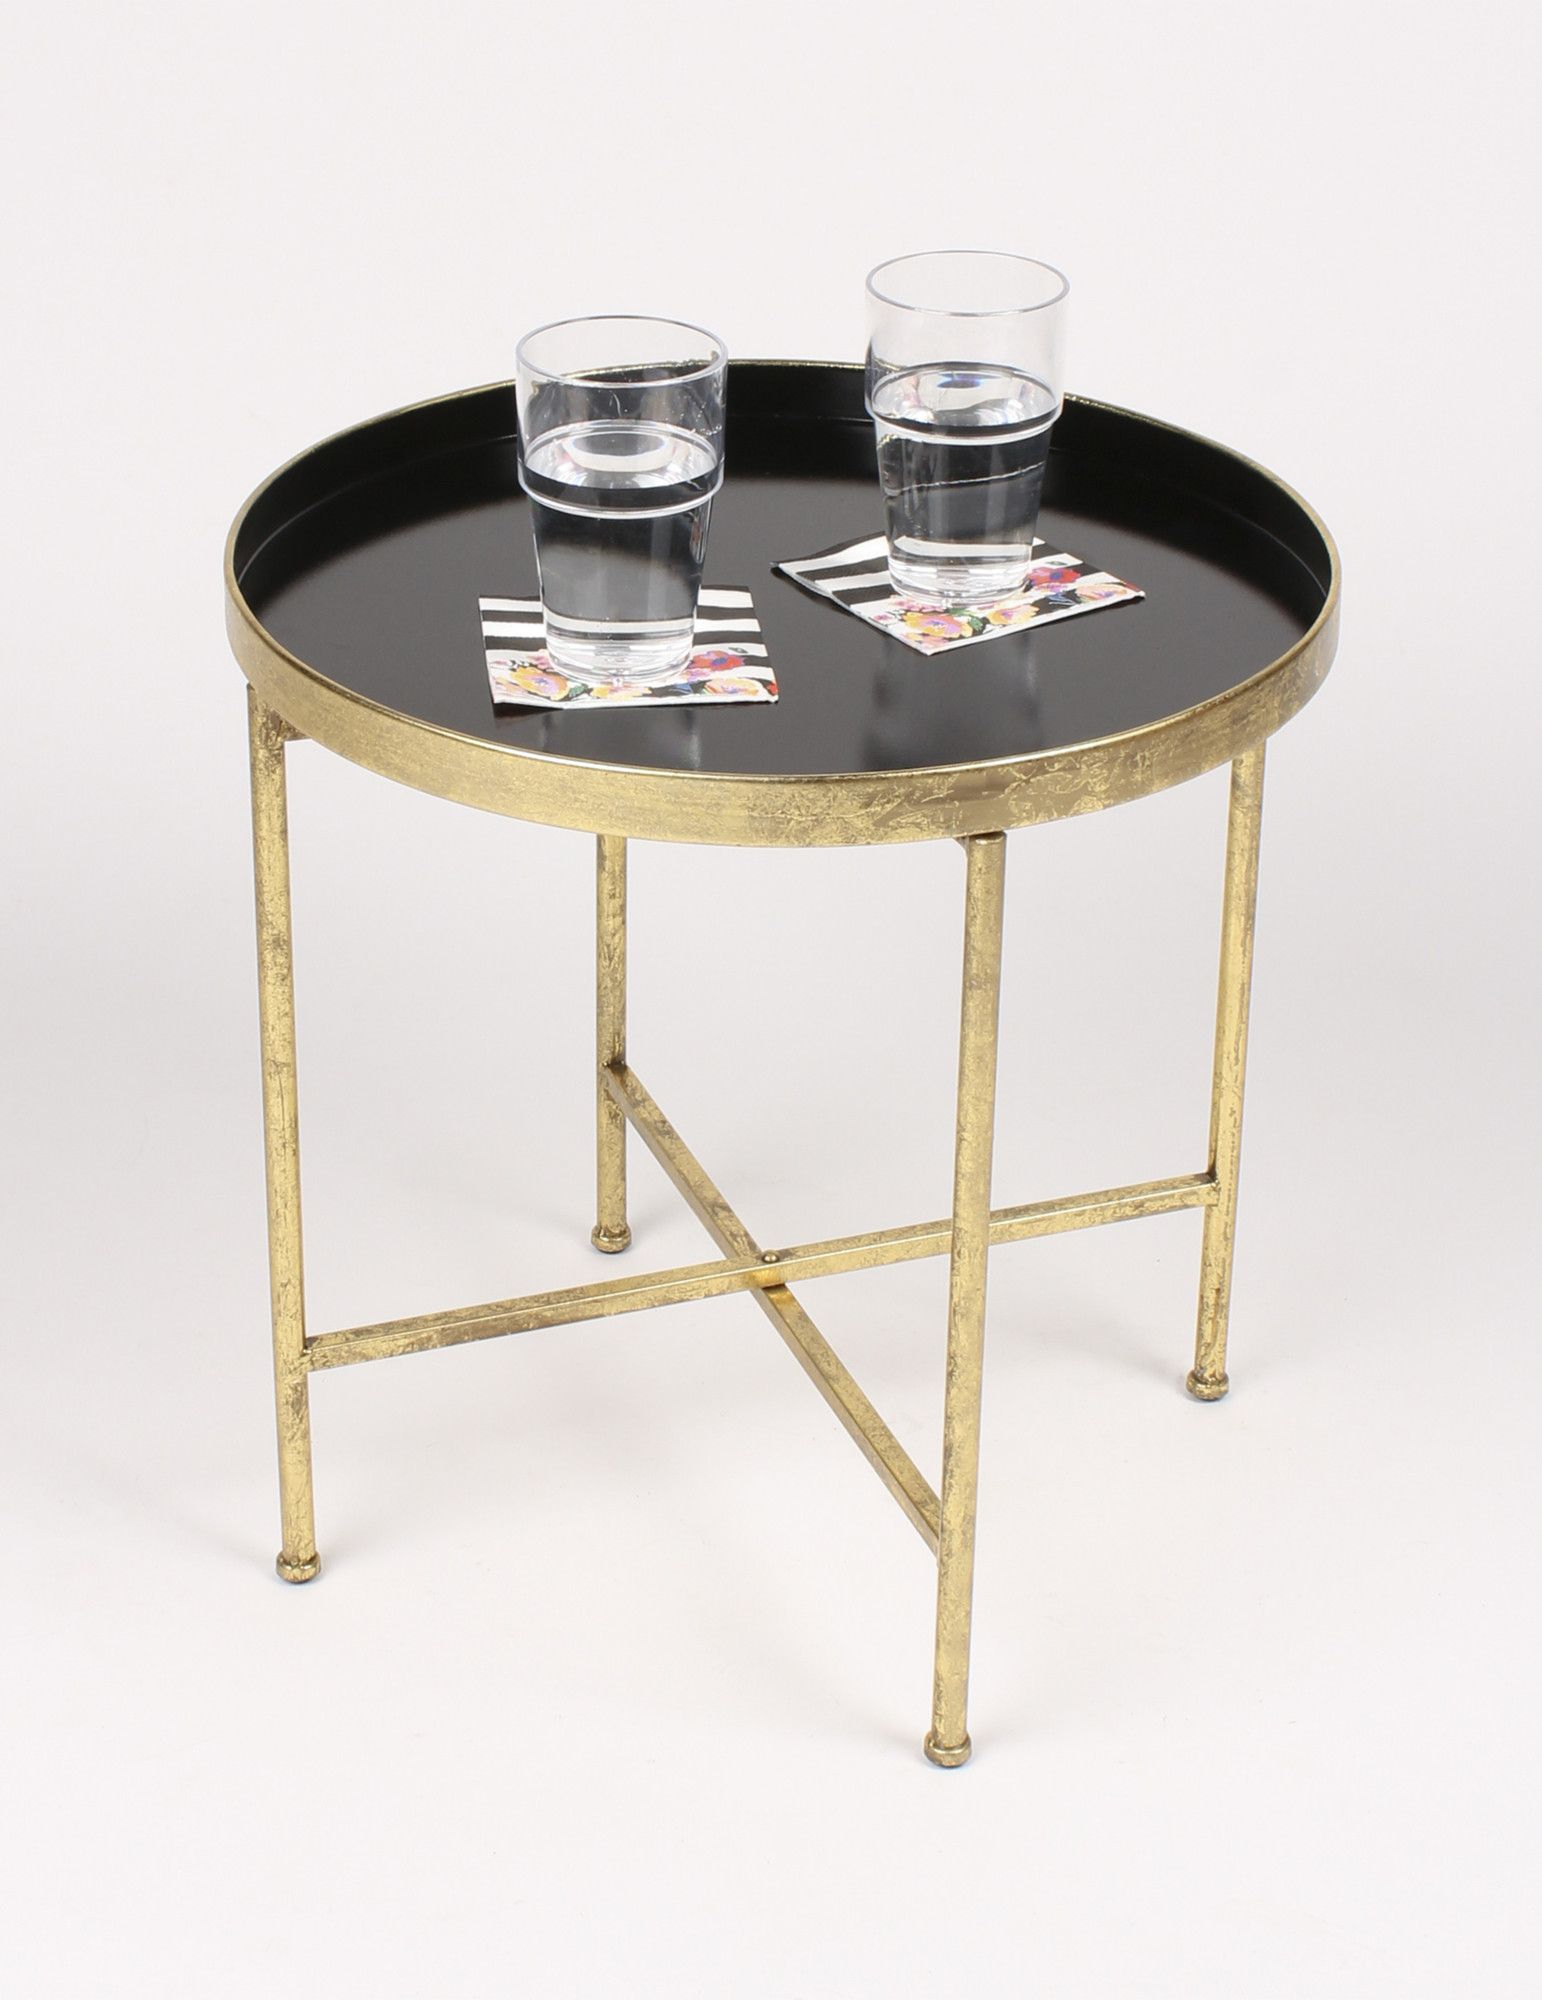 Features:  Crafted Of Metallic Leaf And Painted Metal For Lasting  Durability With Glossy Finish.  Decorative Metal End Table With Accent  Color Tray Surface ...